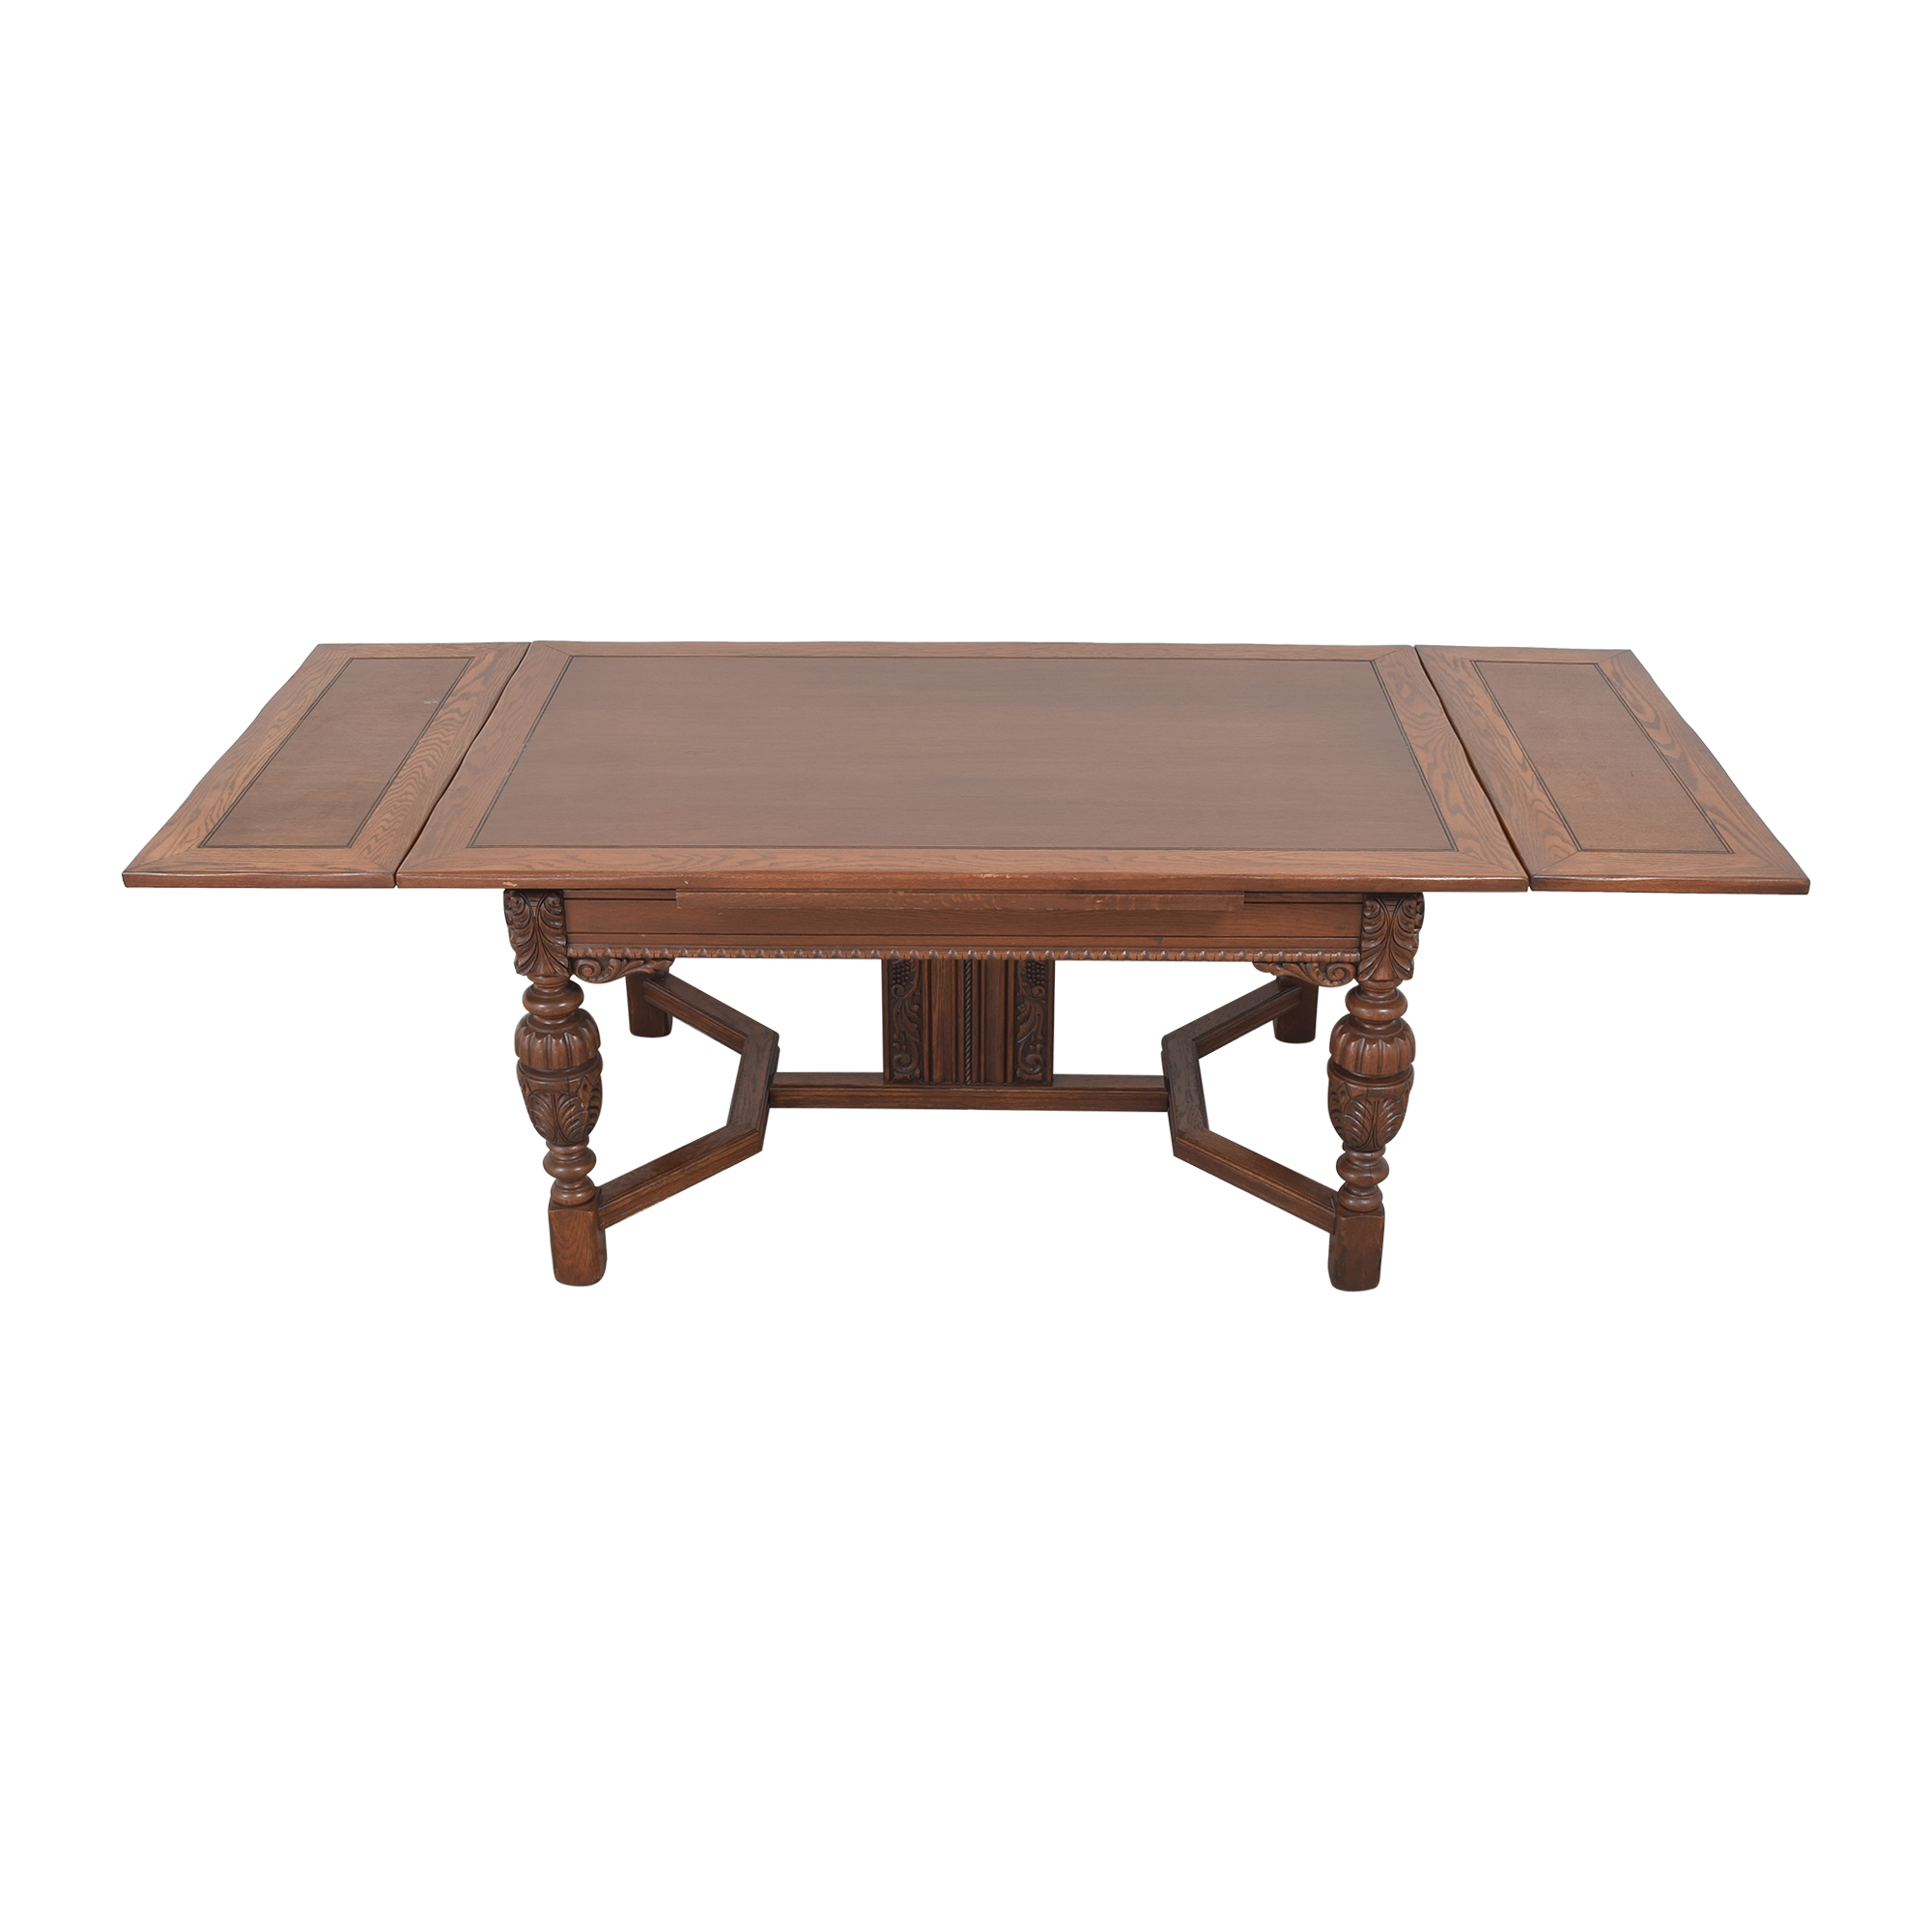 Stiehl Furniture Stiehl Furniture Extendable Trestle Dining Table ct